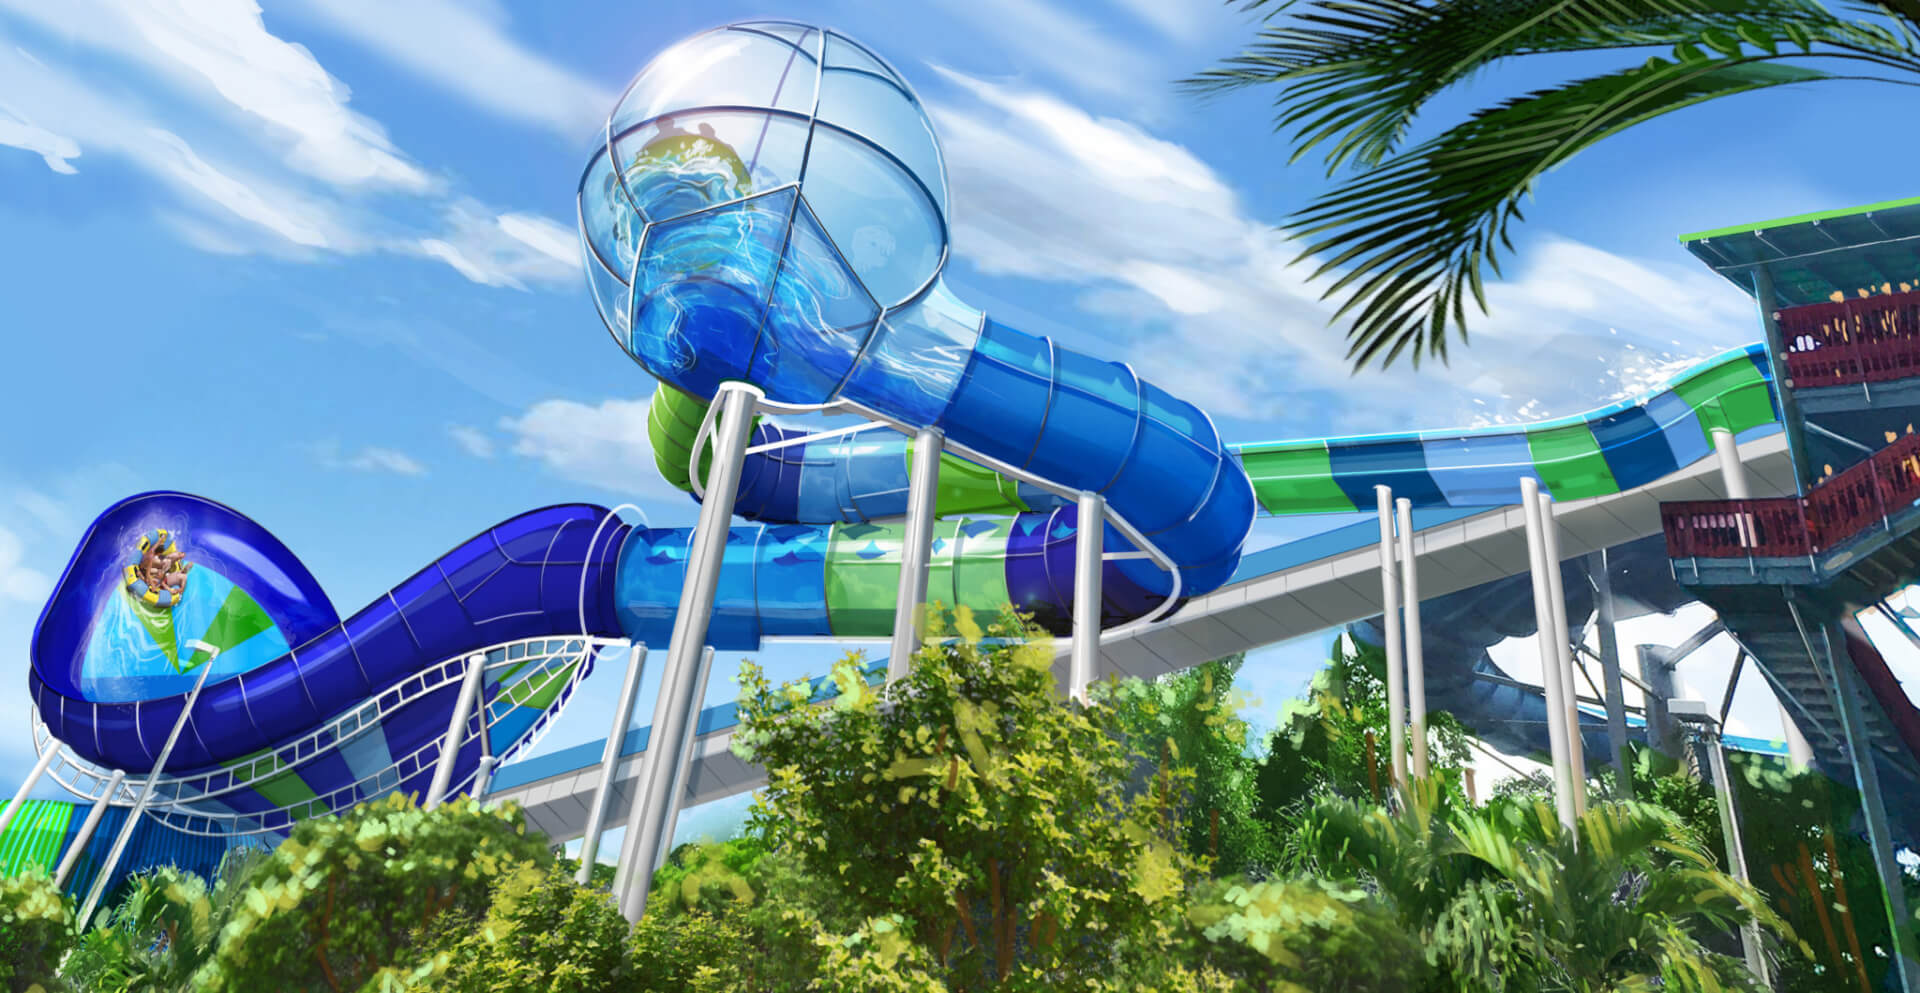 New attraction, 'Ray Rush,' to open at Aquatica Orlando on May 12th